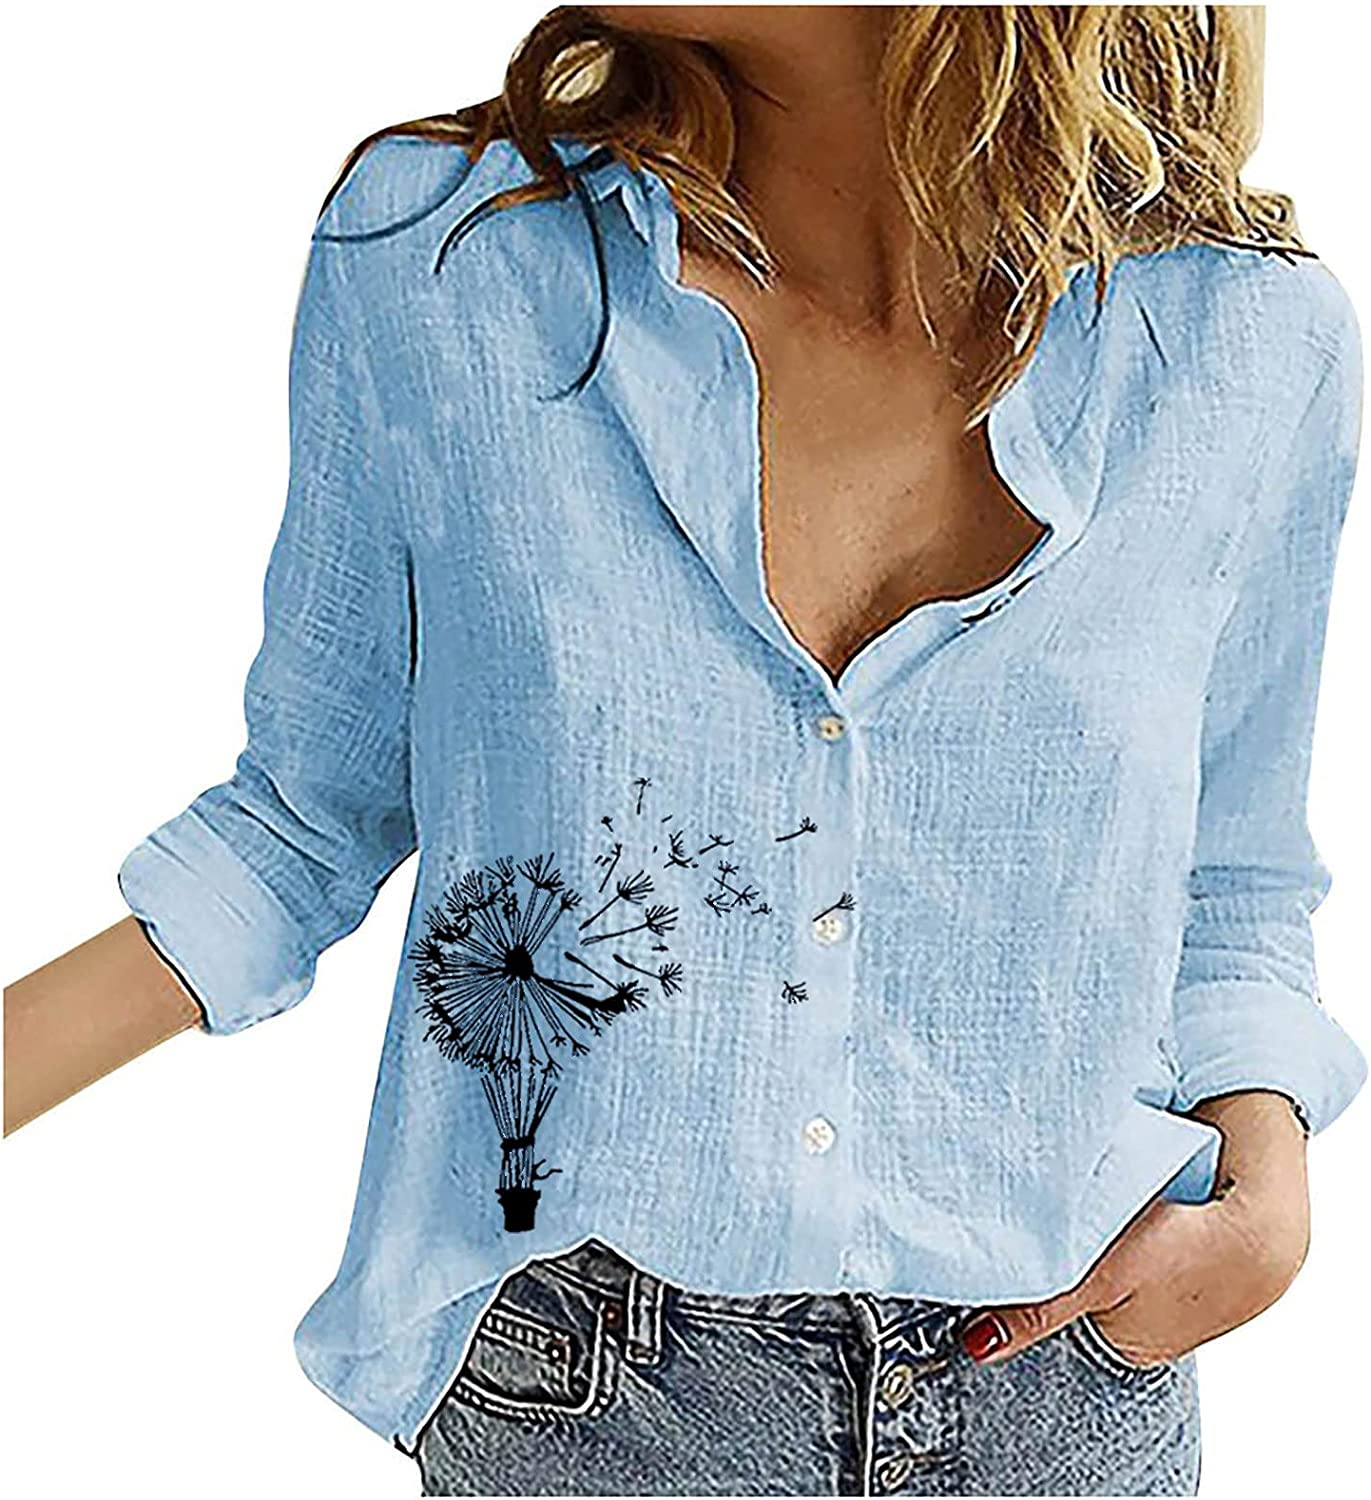 Fashion Women's Loose Buttons Printing Lapel Long Sleeves T-Shirts Blouse Tops Summer Tops Tee Shirts Blouse